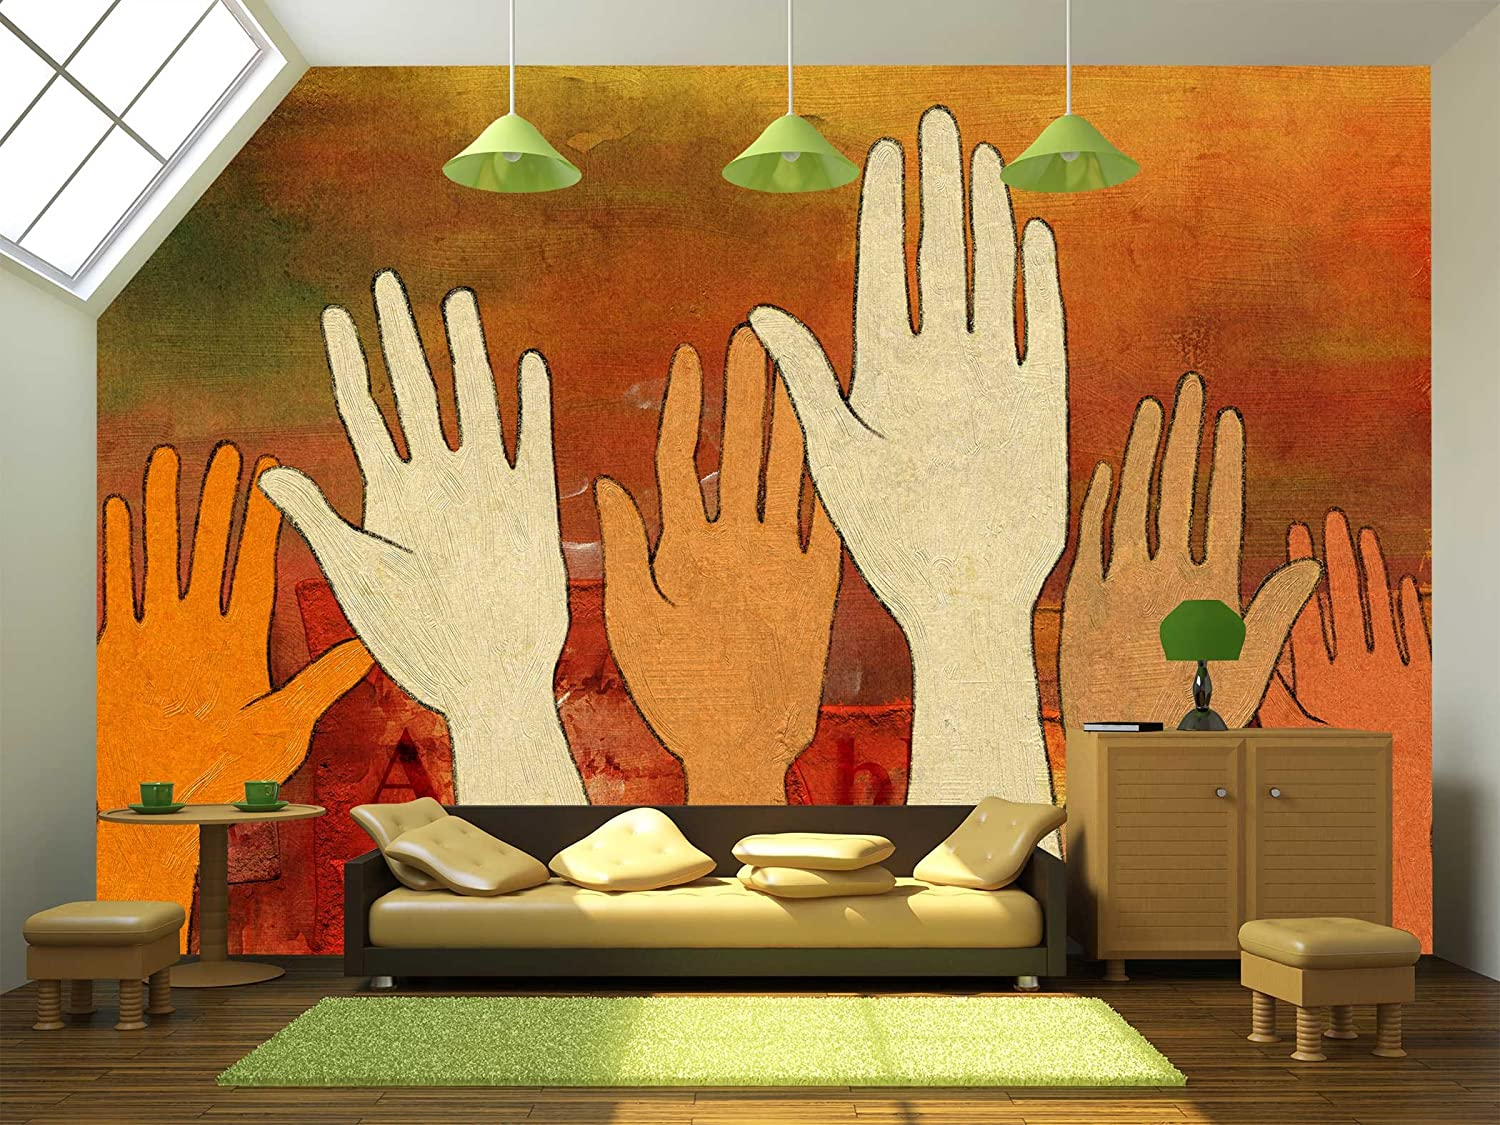 Illustration Group of Raised Hands over a Colorful and Textured ...